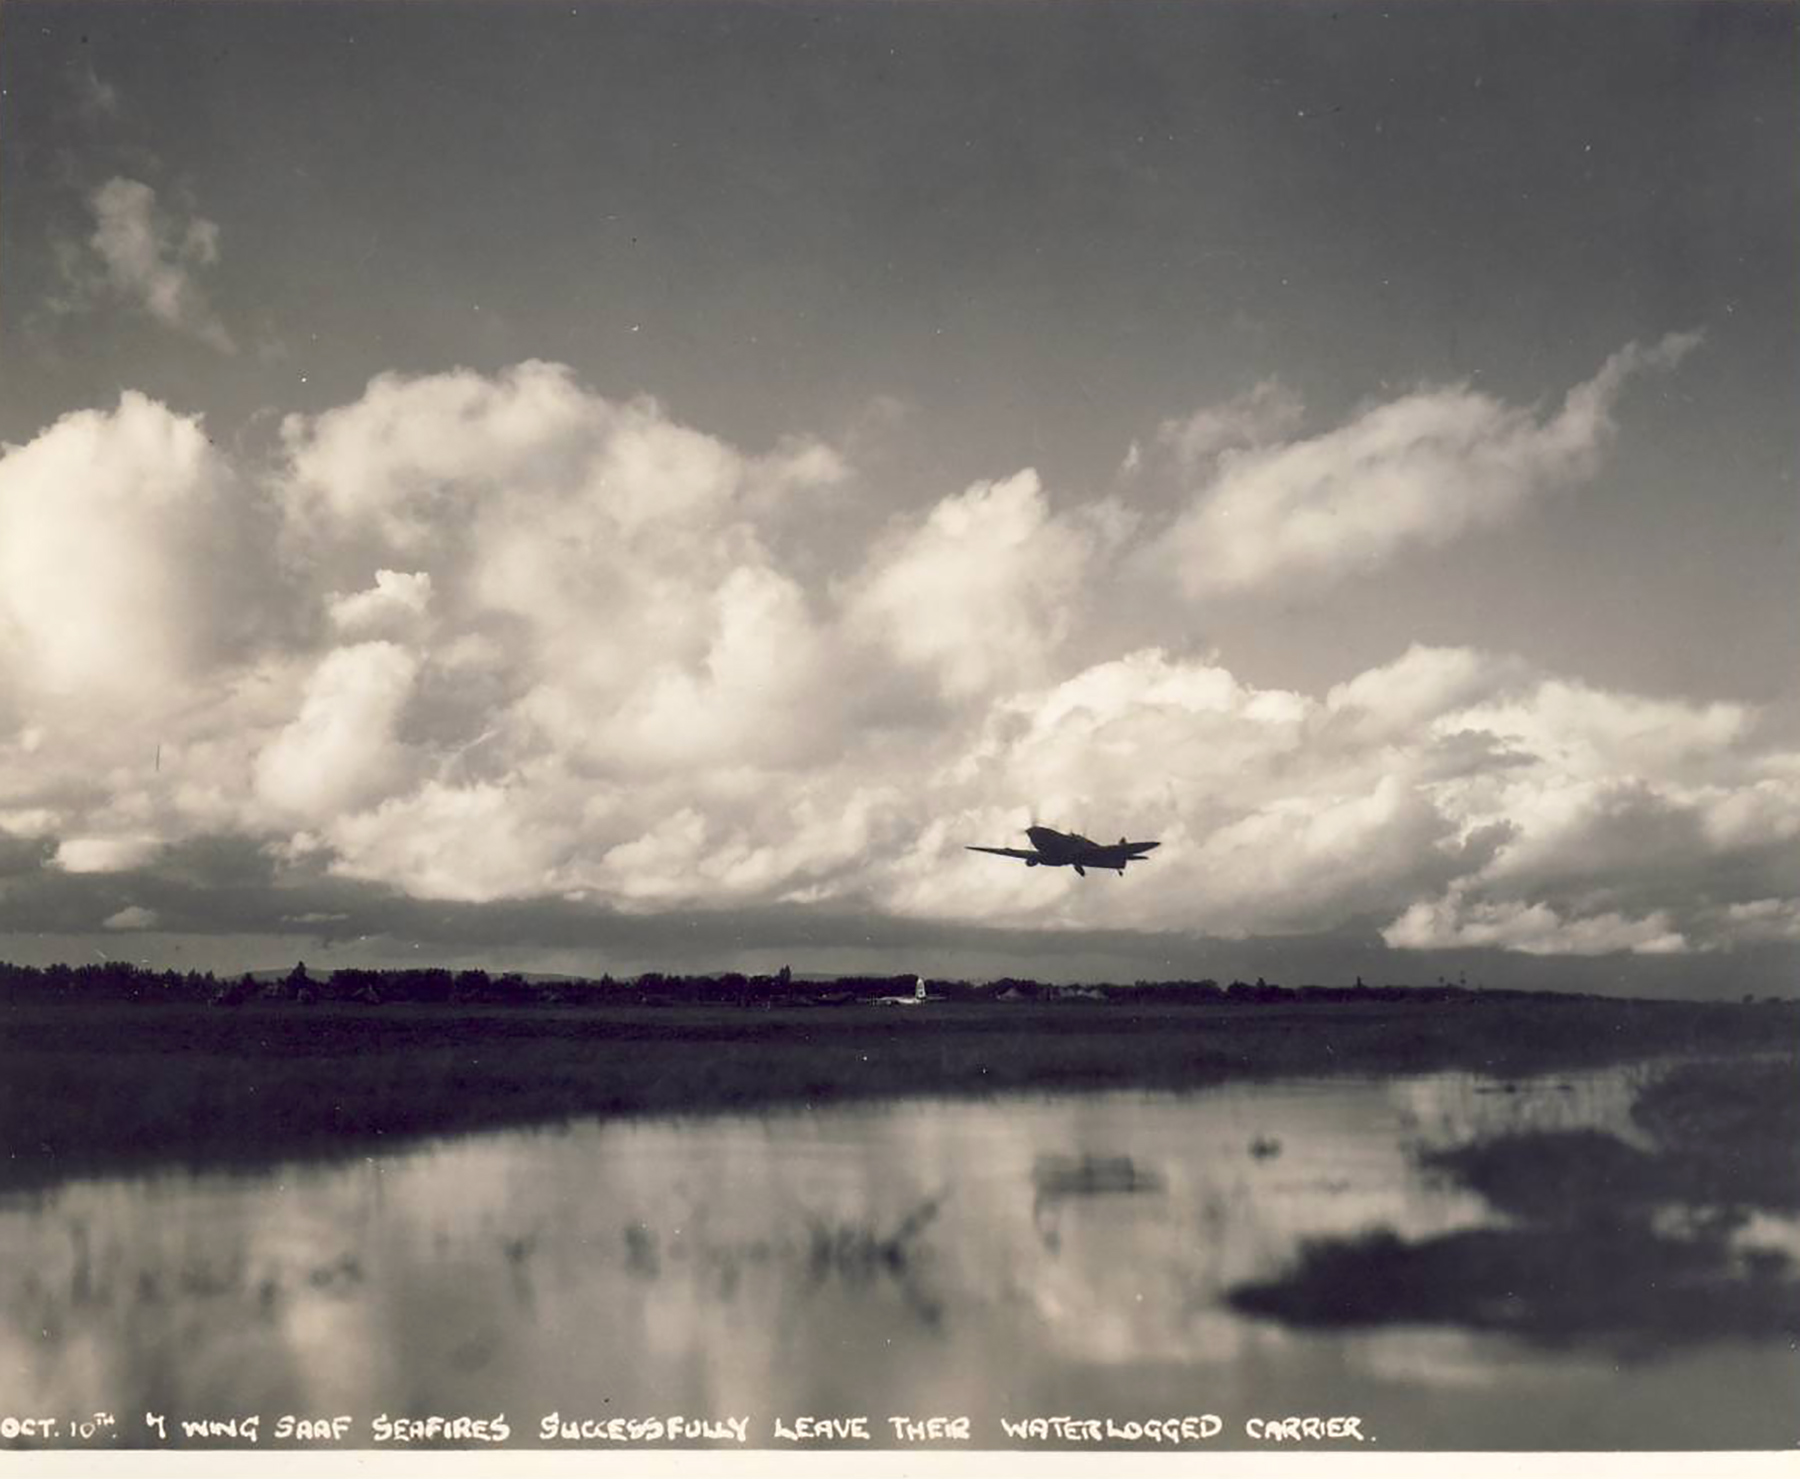 Spitfire MkVII c wing taking off at a base in Italy 02